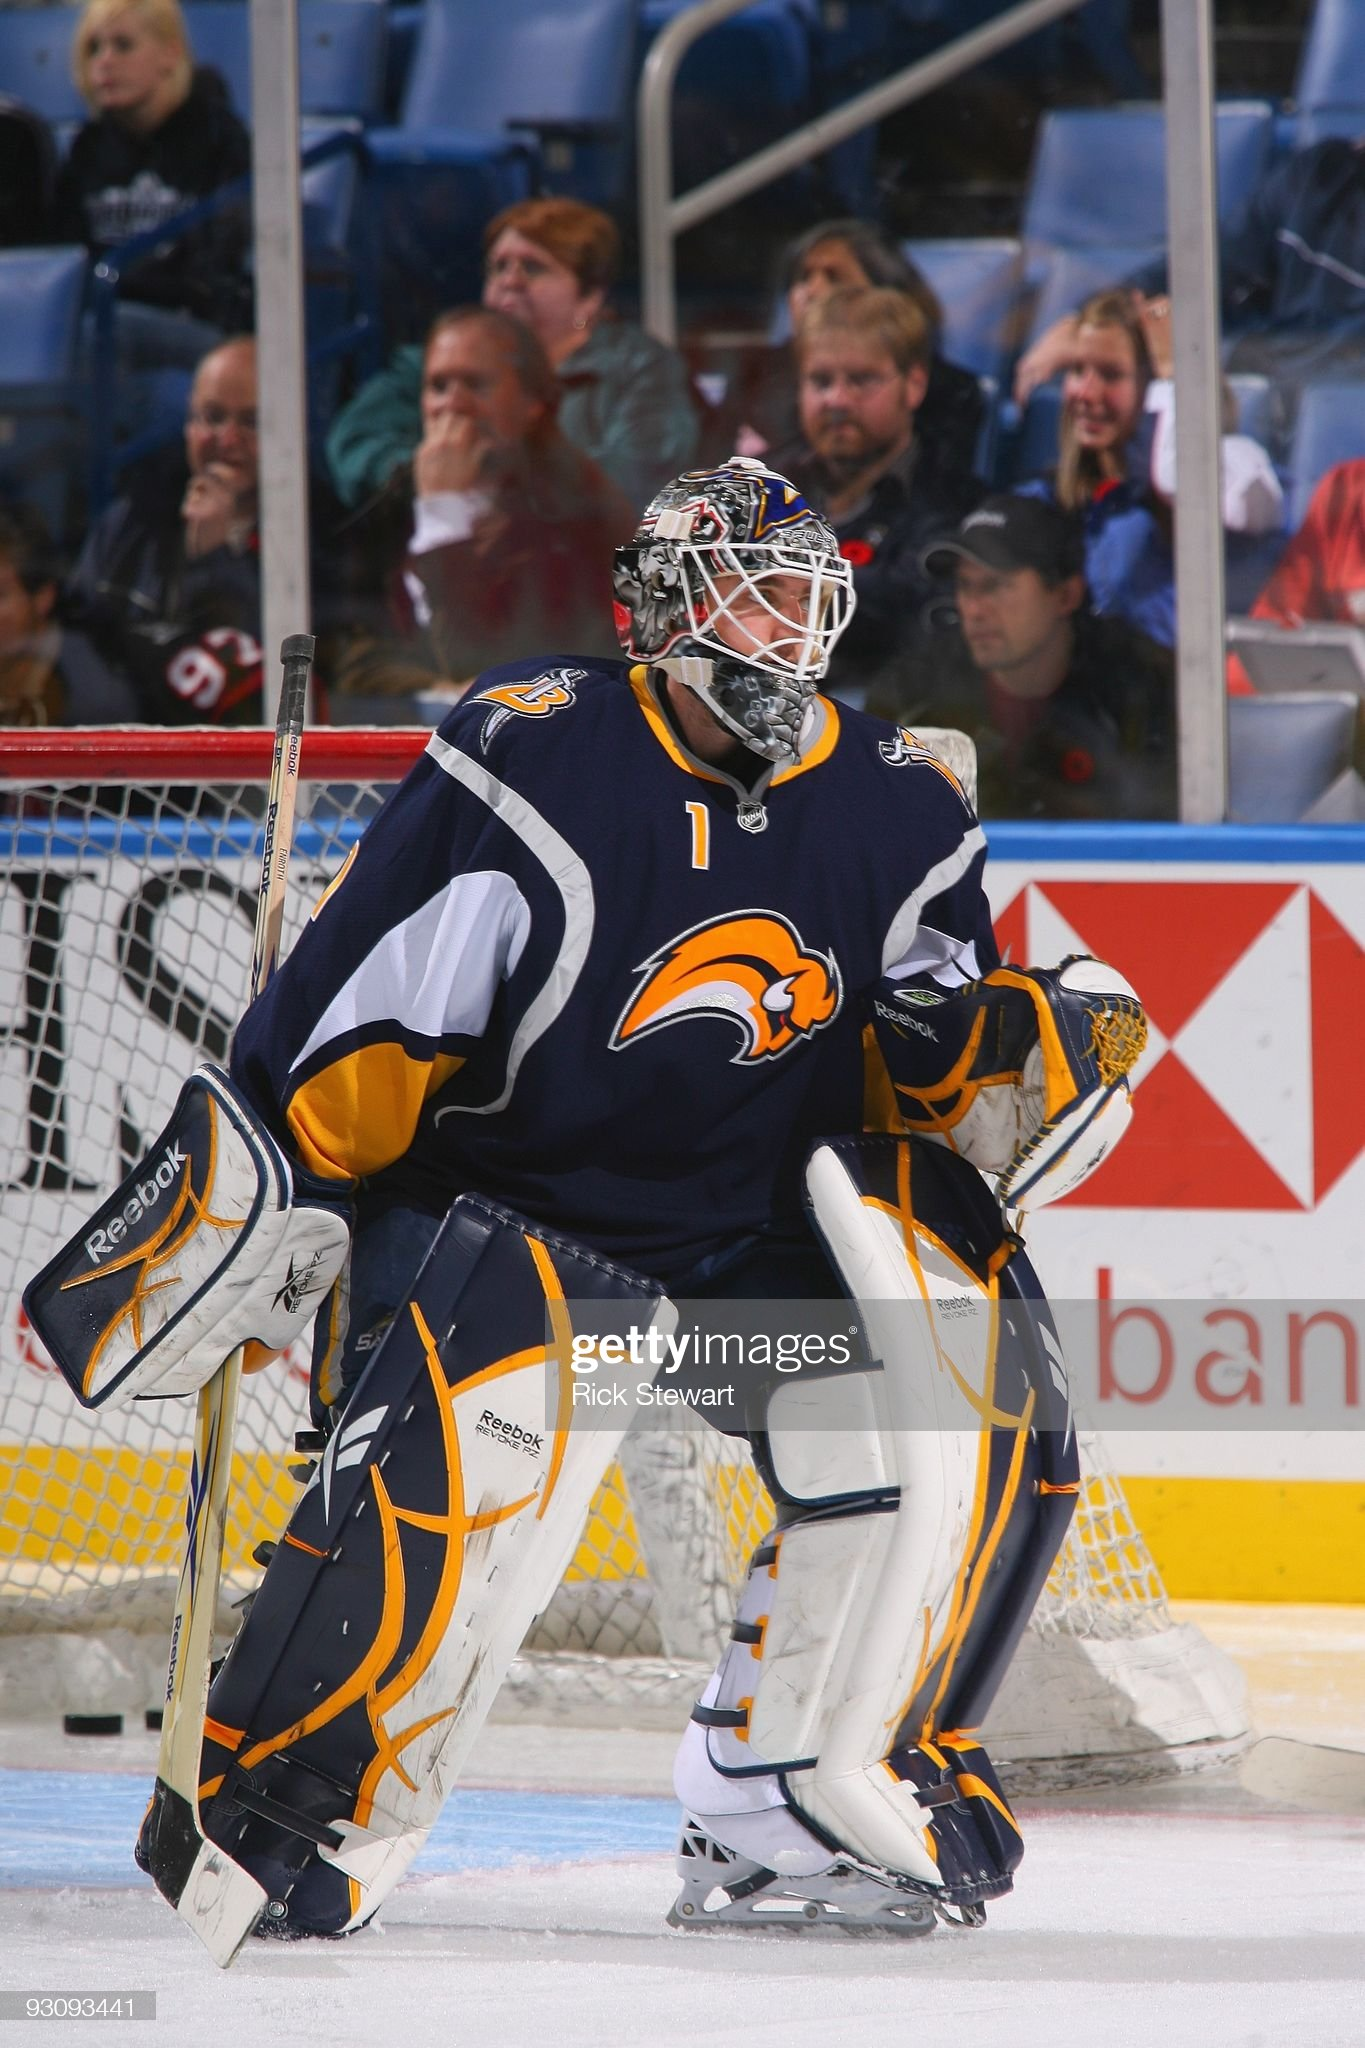 jonas-enroth-of-the-buffalo-sabres-skate